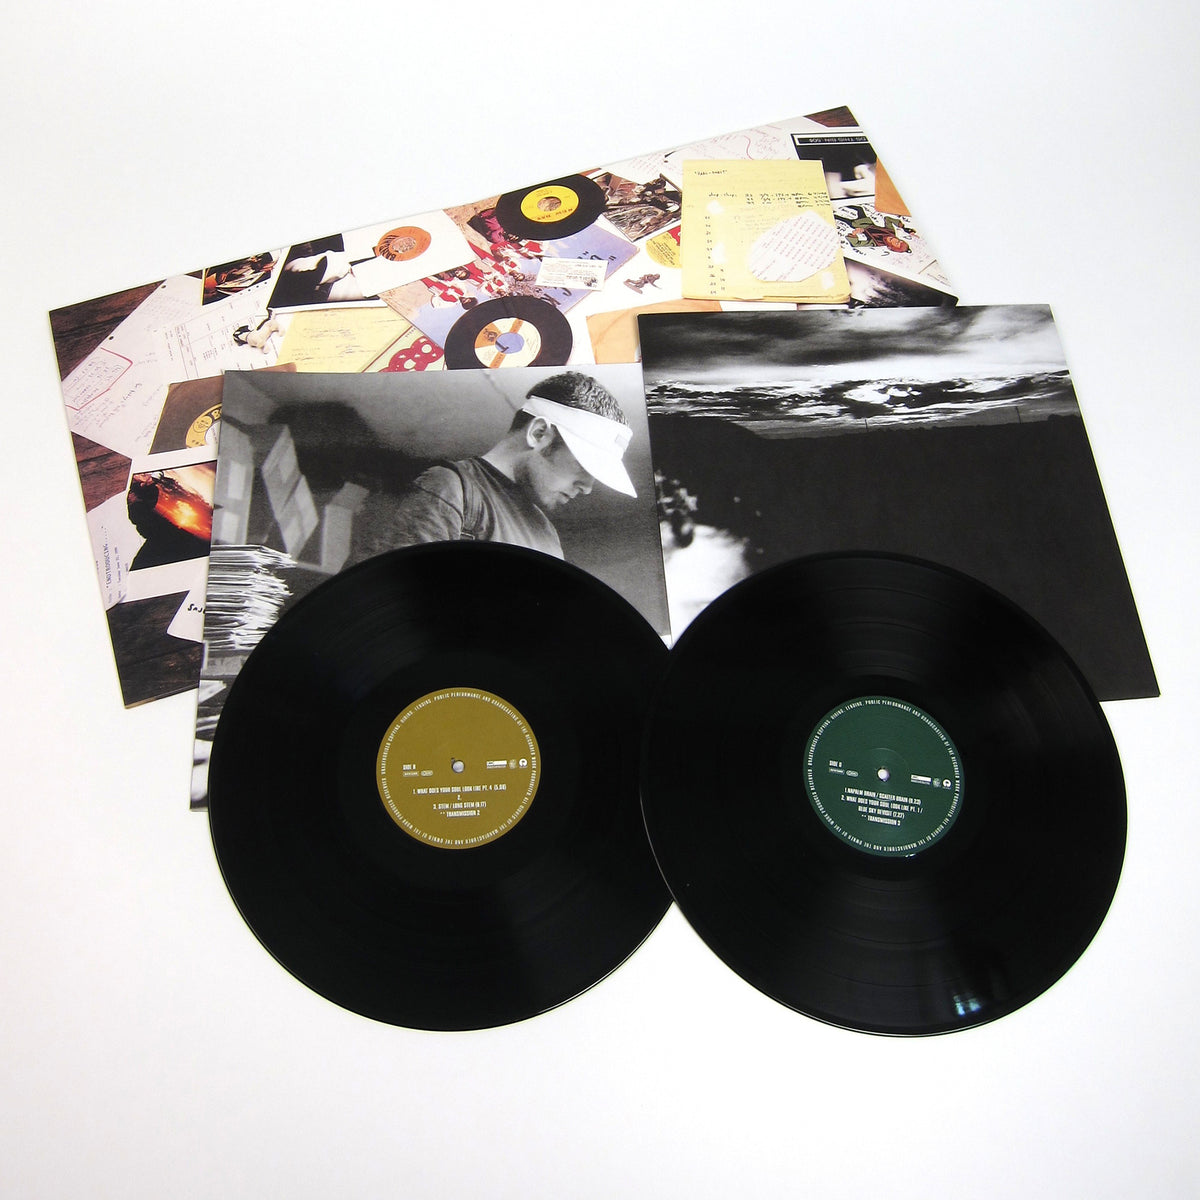 DJ Shadow: Endtroducing - 20th Anniversary Endtrospective Edition (180g) Vinyl 6LP Boxset